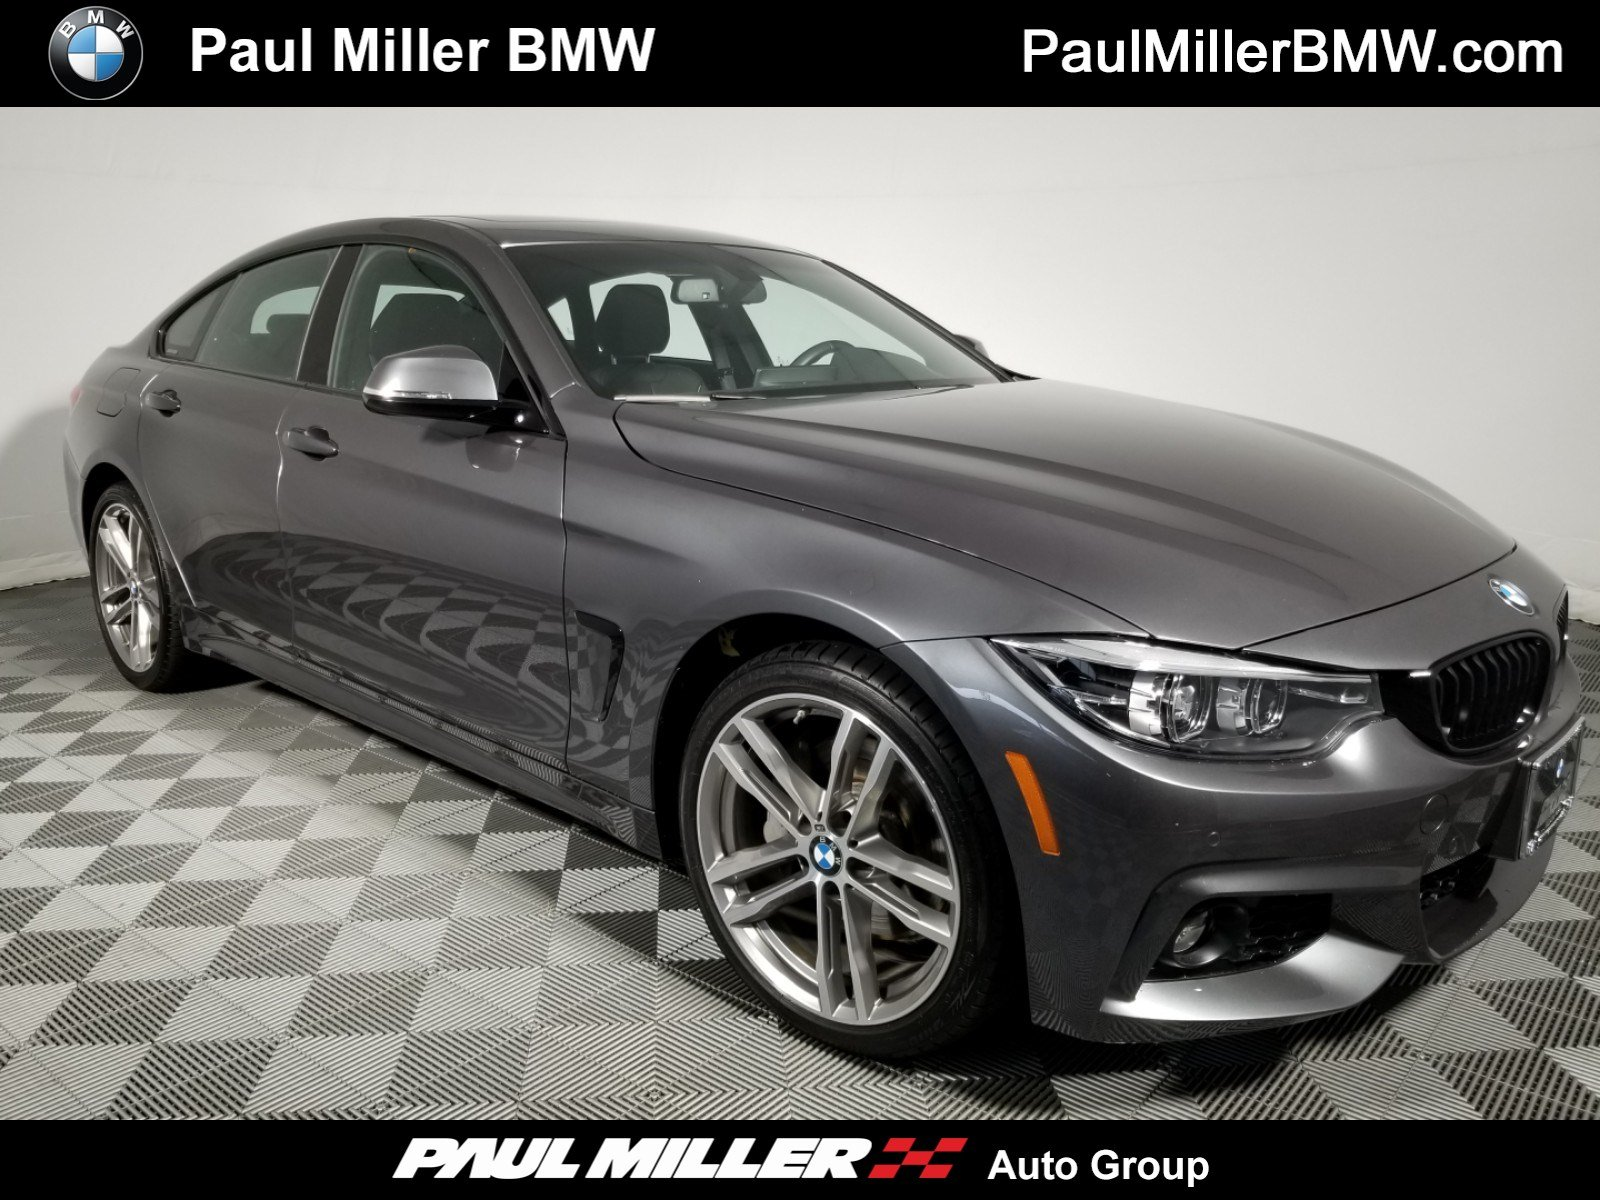 Pre Owned 2018 BMW 4 Series 430i xDrive Hatchback in Wayne L